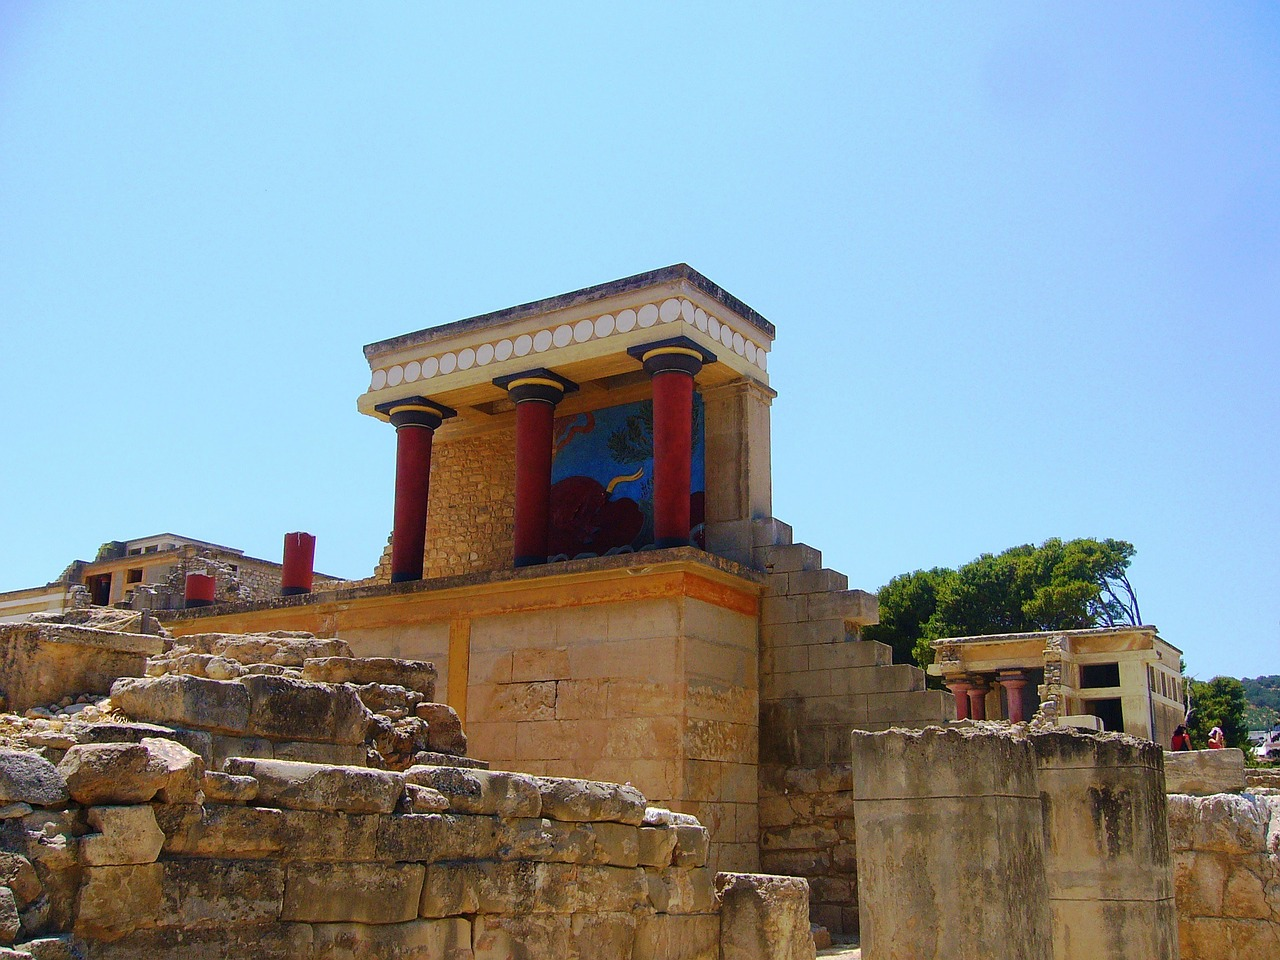 Best Place To Visit in Crete Islands-Knossos